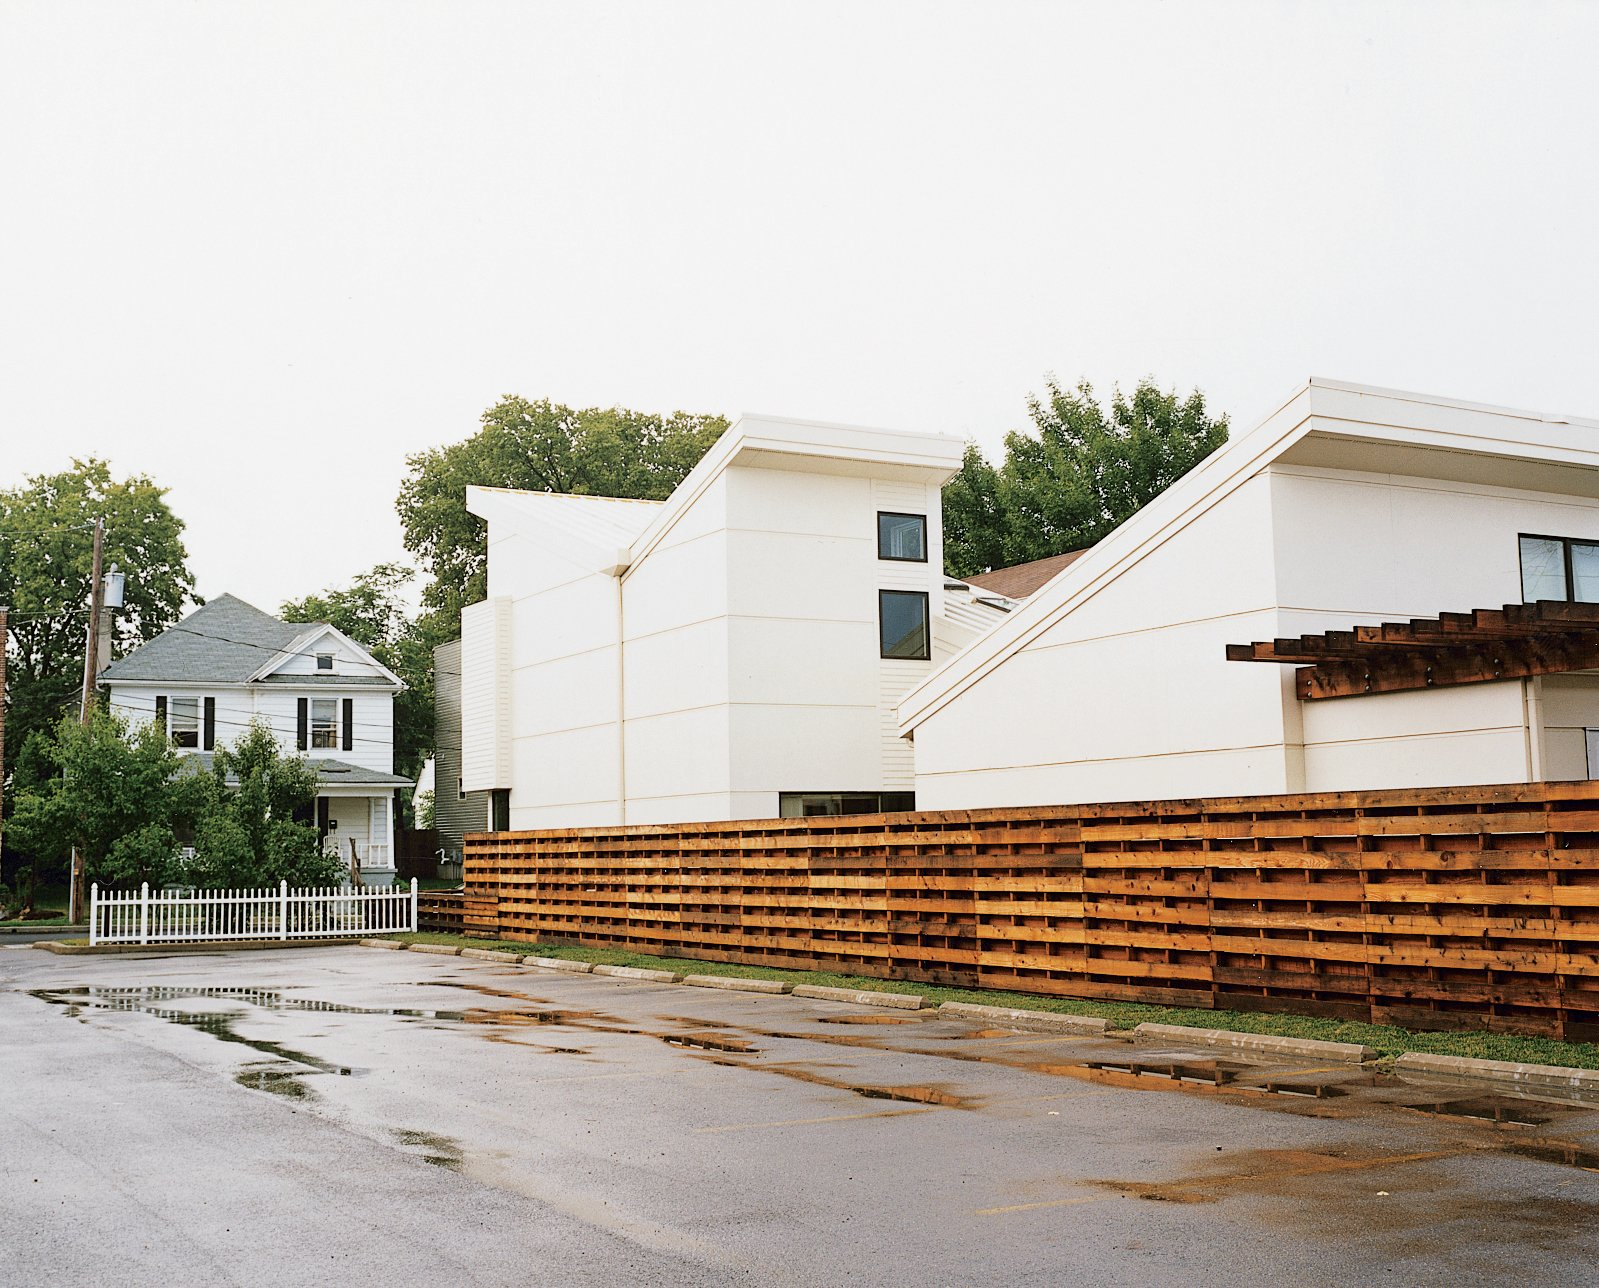 The modern Bracher house stands out in the more traditional Fairgrounds neighborhood outside the Dayton, Ohio city center.  Photo 9 of 20 in 20 Modern Homes From the Midwest from Suburban Flight